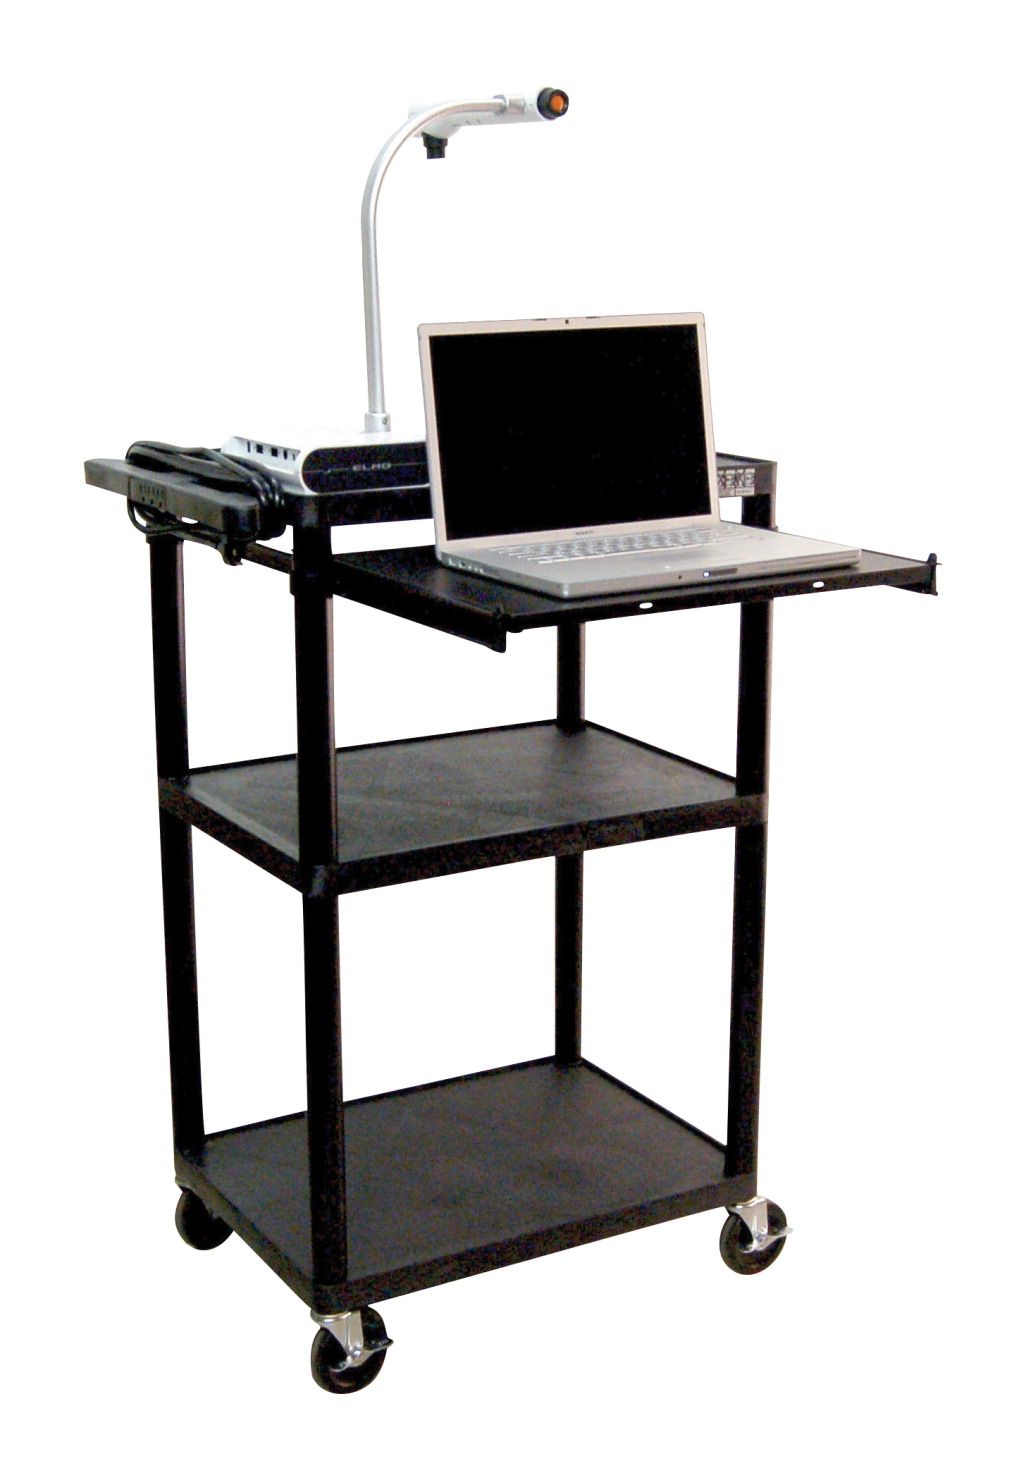 Luxor H Wilson Presentation Cart with Pull Out Front Tray, 24 in W X 18 in D X 42 in H, Black Shelves/Legs